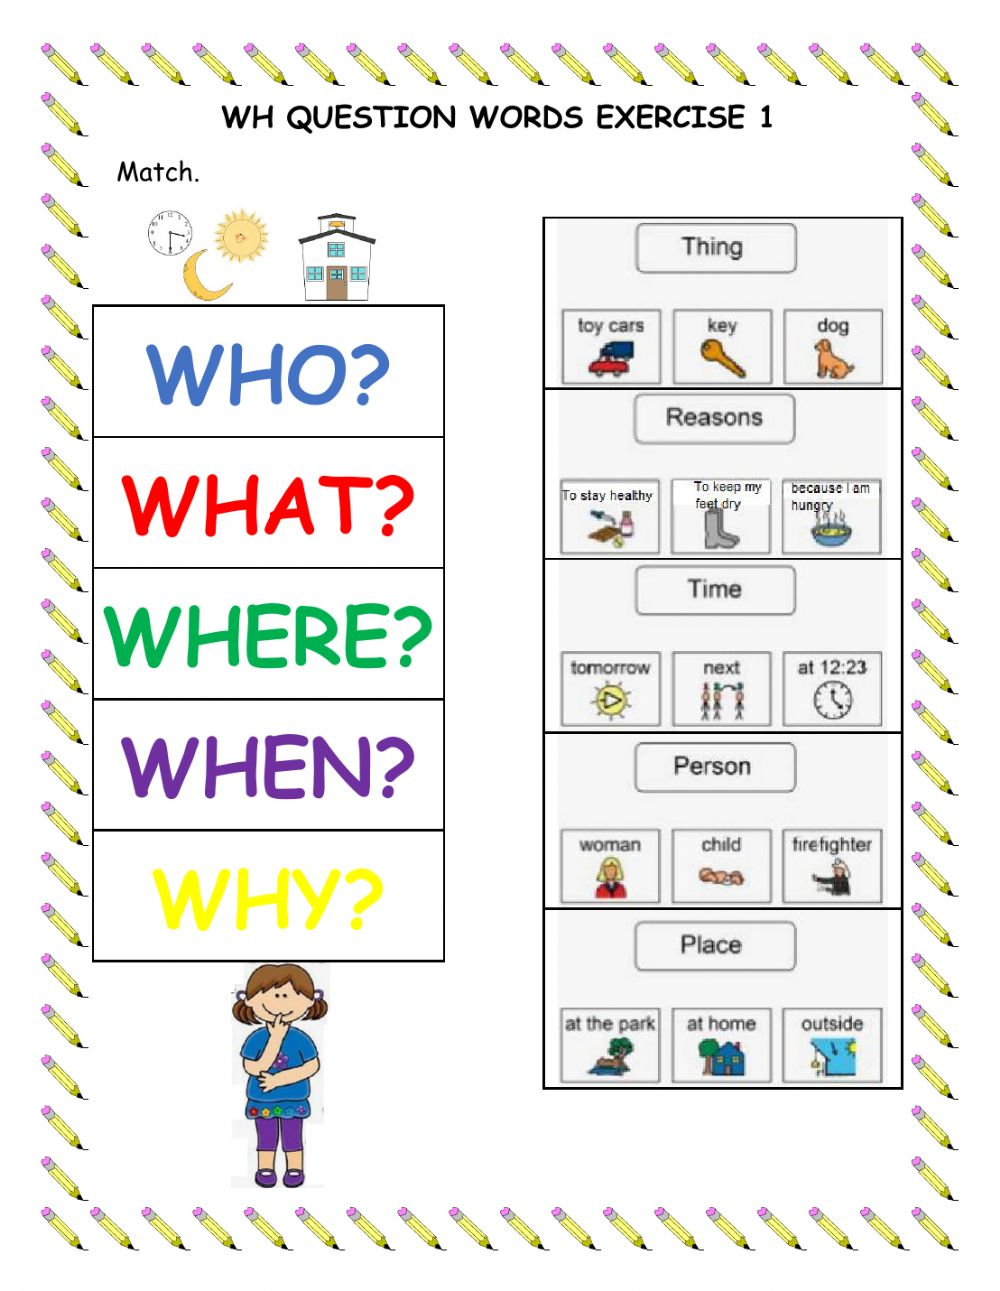 hight resolution of Wh Question Words Exercise 1 worksheet